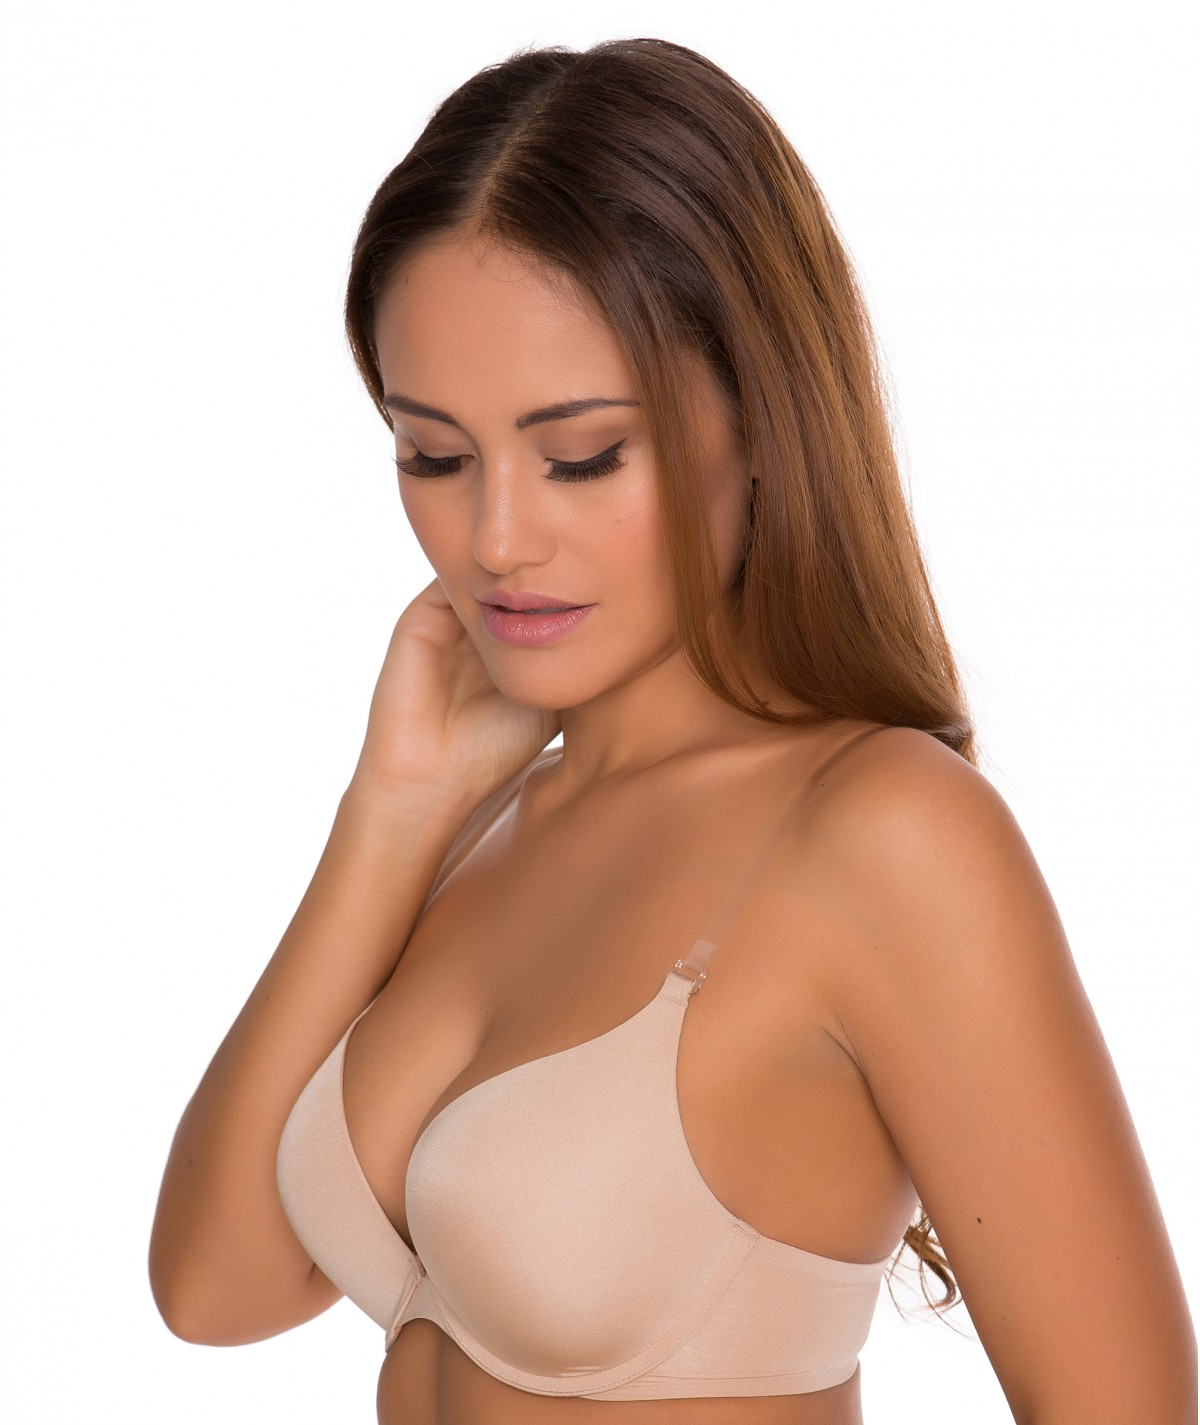 Minimizer Bra with Clear Strap - Best Bra Choice for Woman